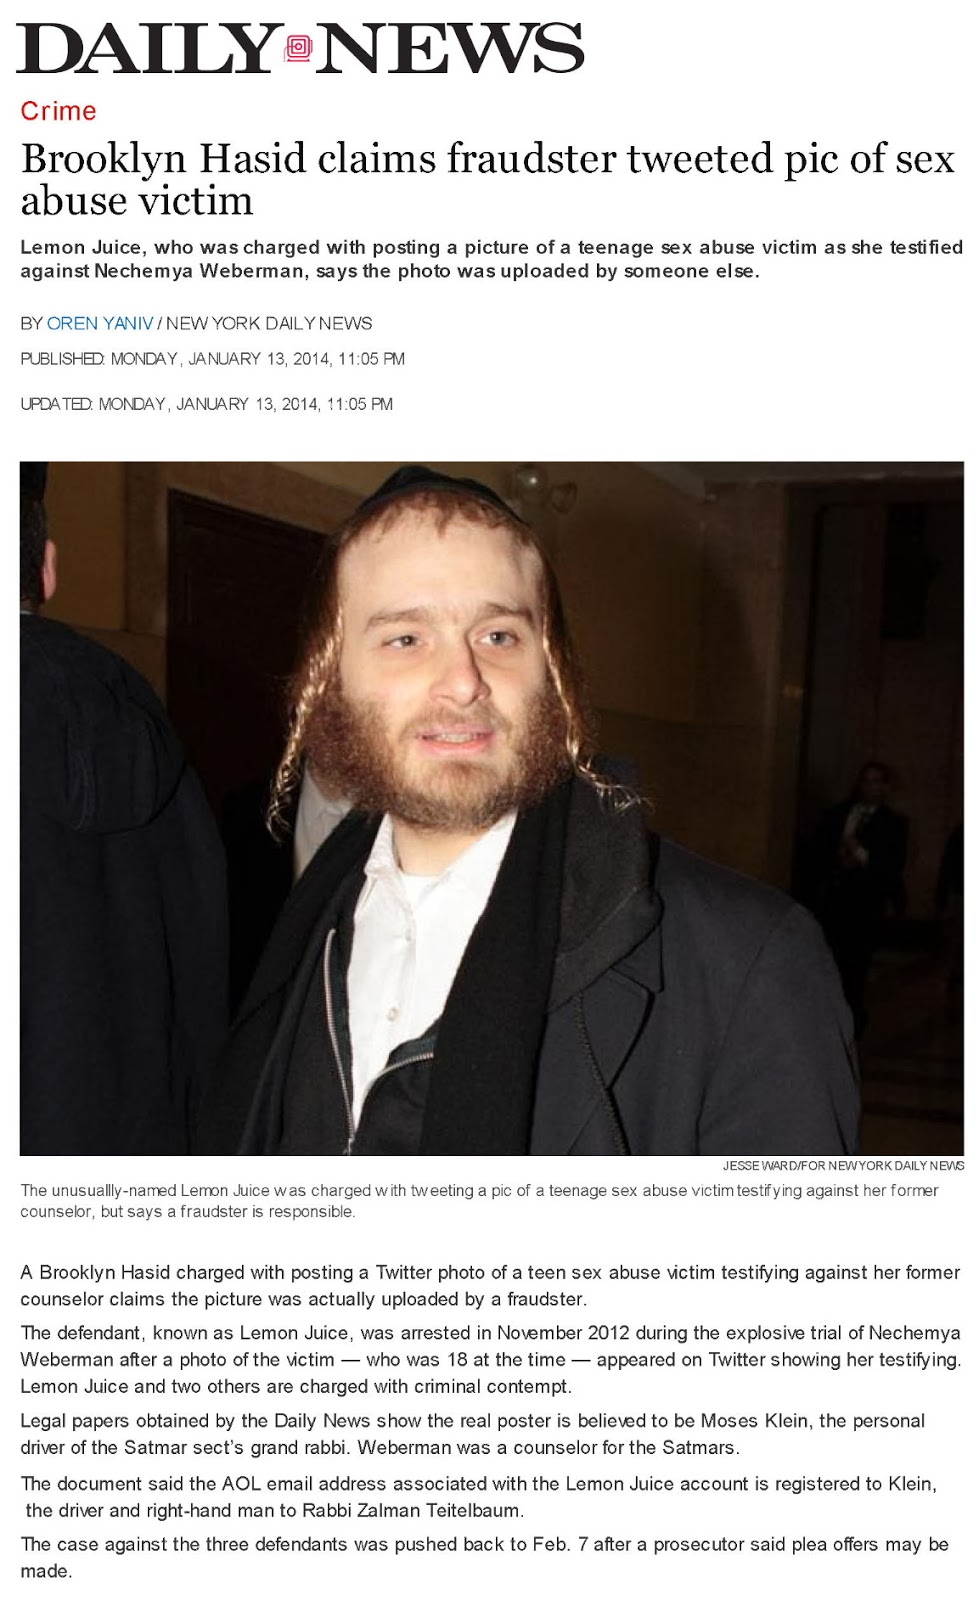 http://www.nydailynews.com/news/crime/hasid-claims-fraudster-tweeted-sex-abuse-victim-pic-article-1.1578659?print